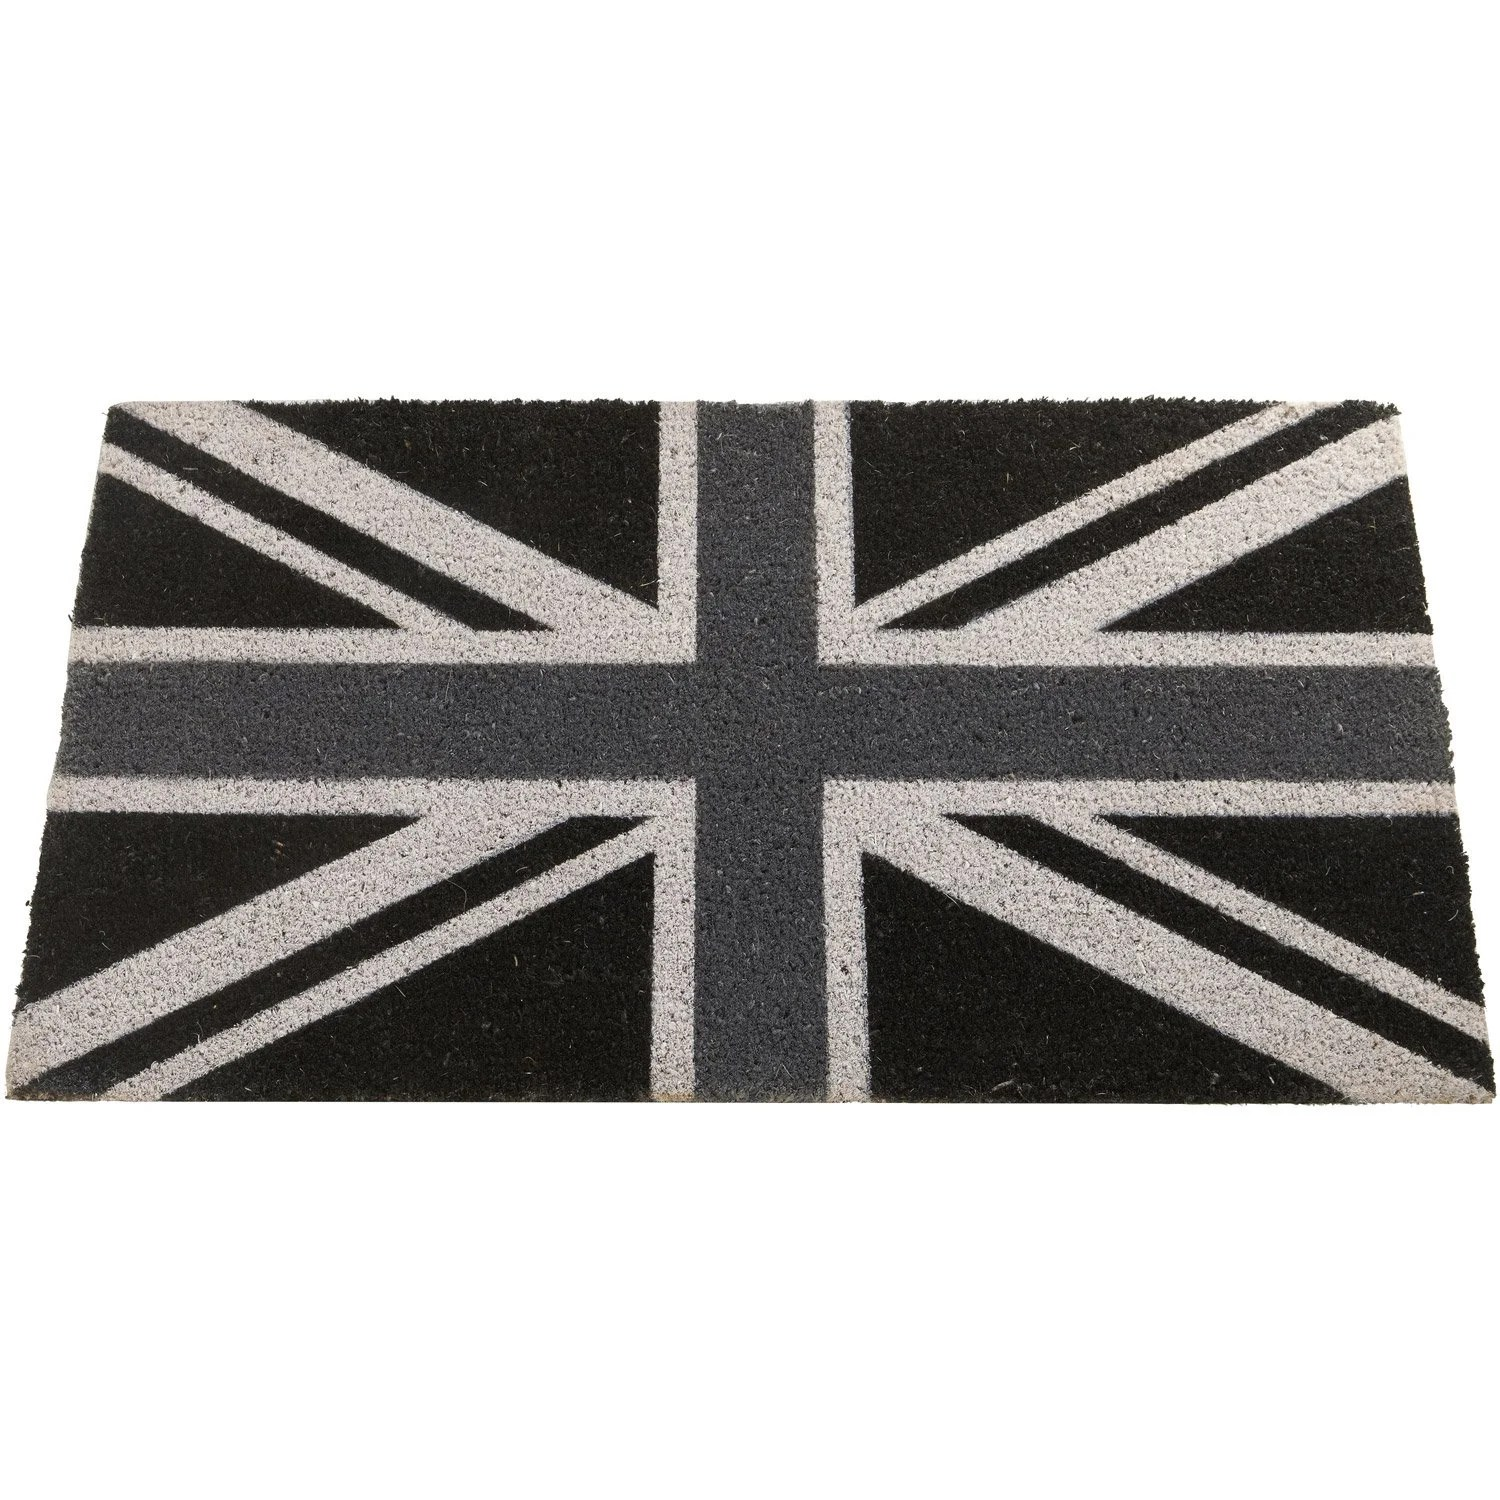 Tapis Exterieur Montreal Paillasson Coco Leroy Merlin So64 Montrealeast